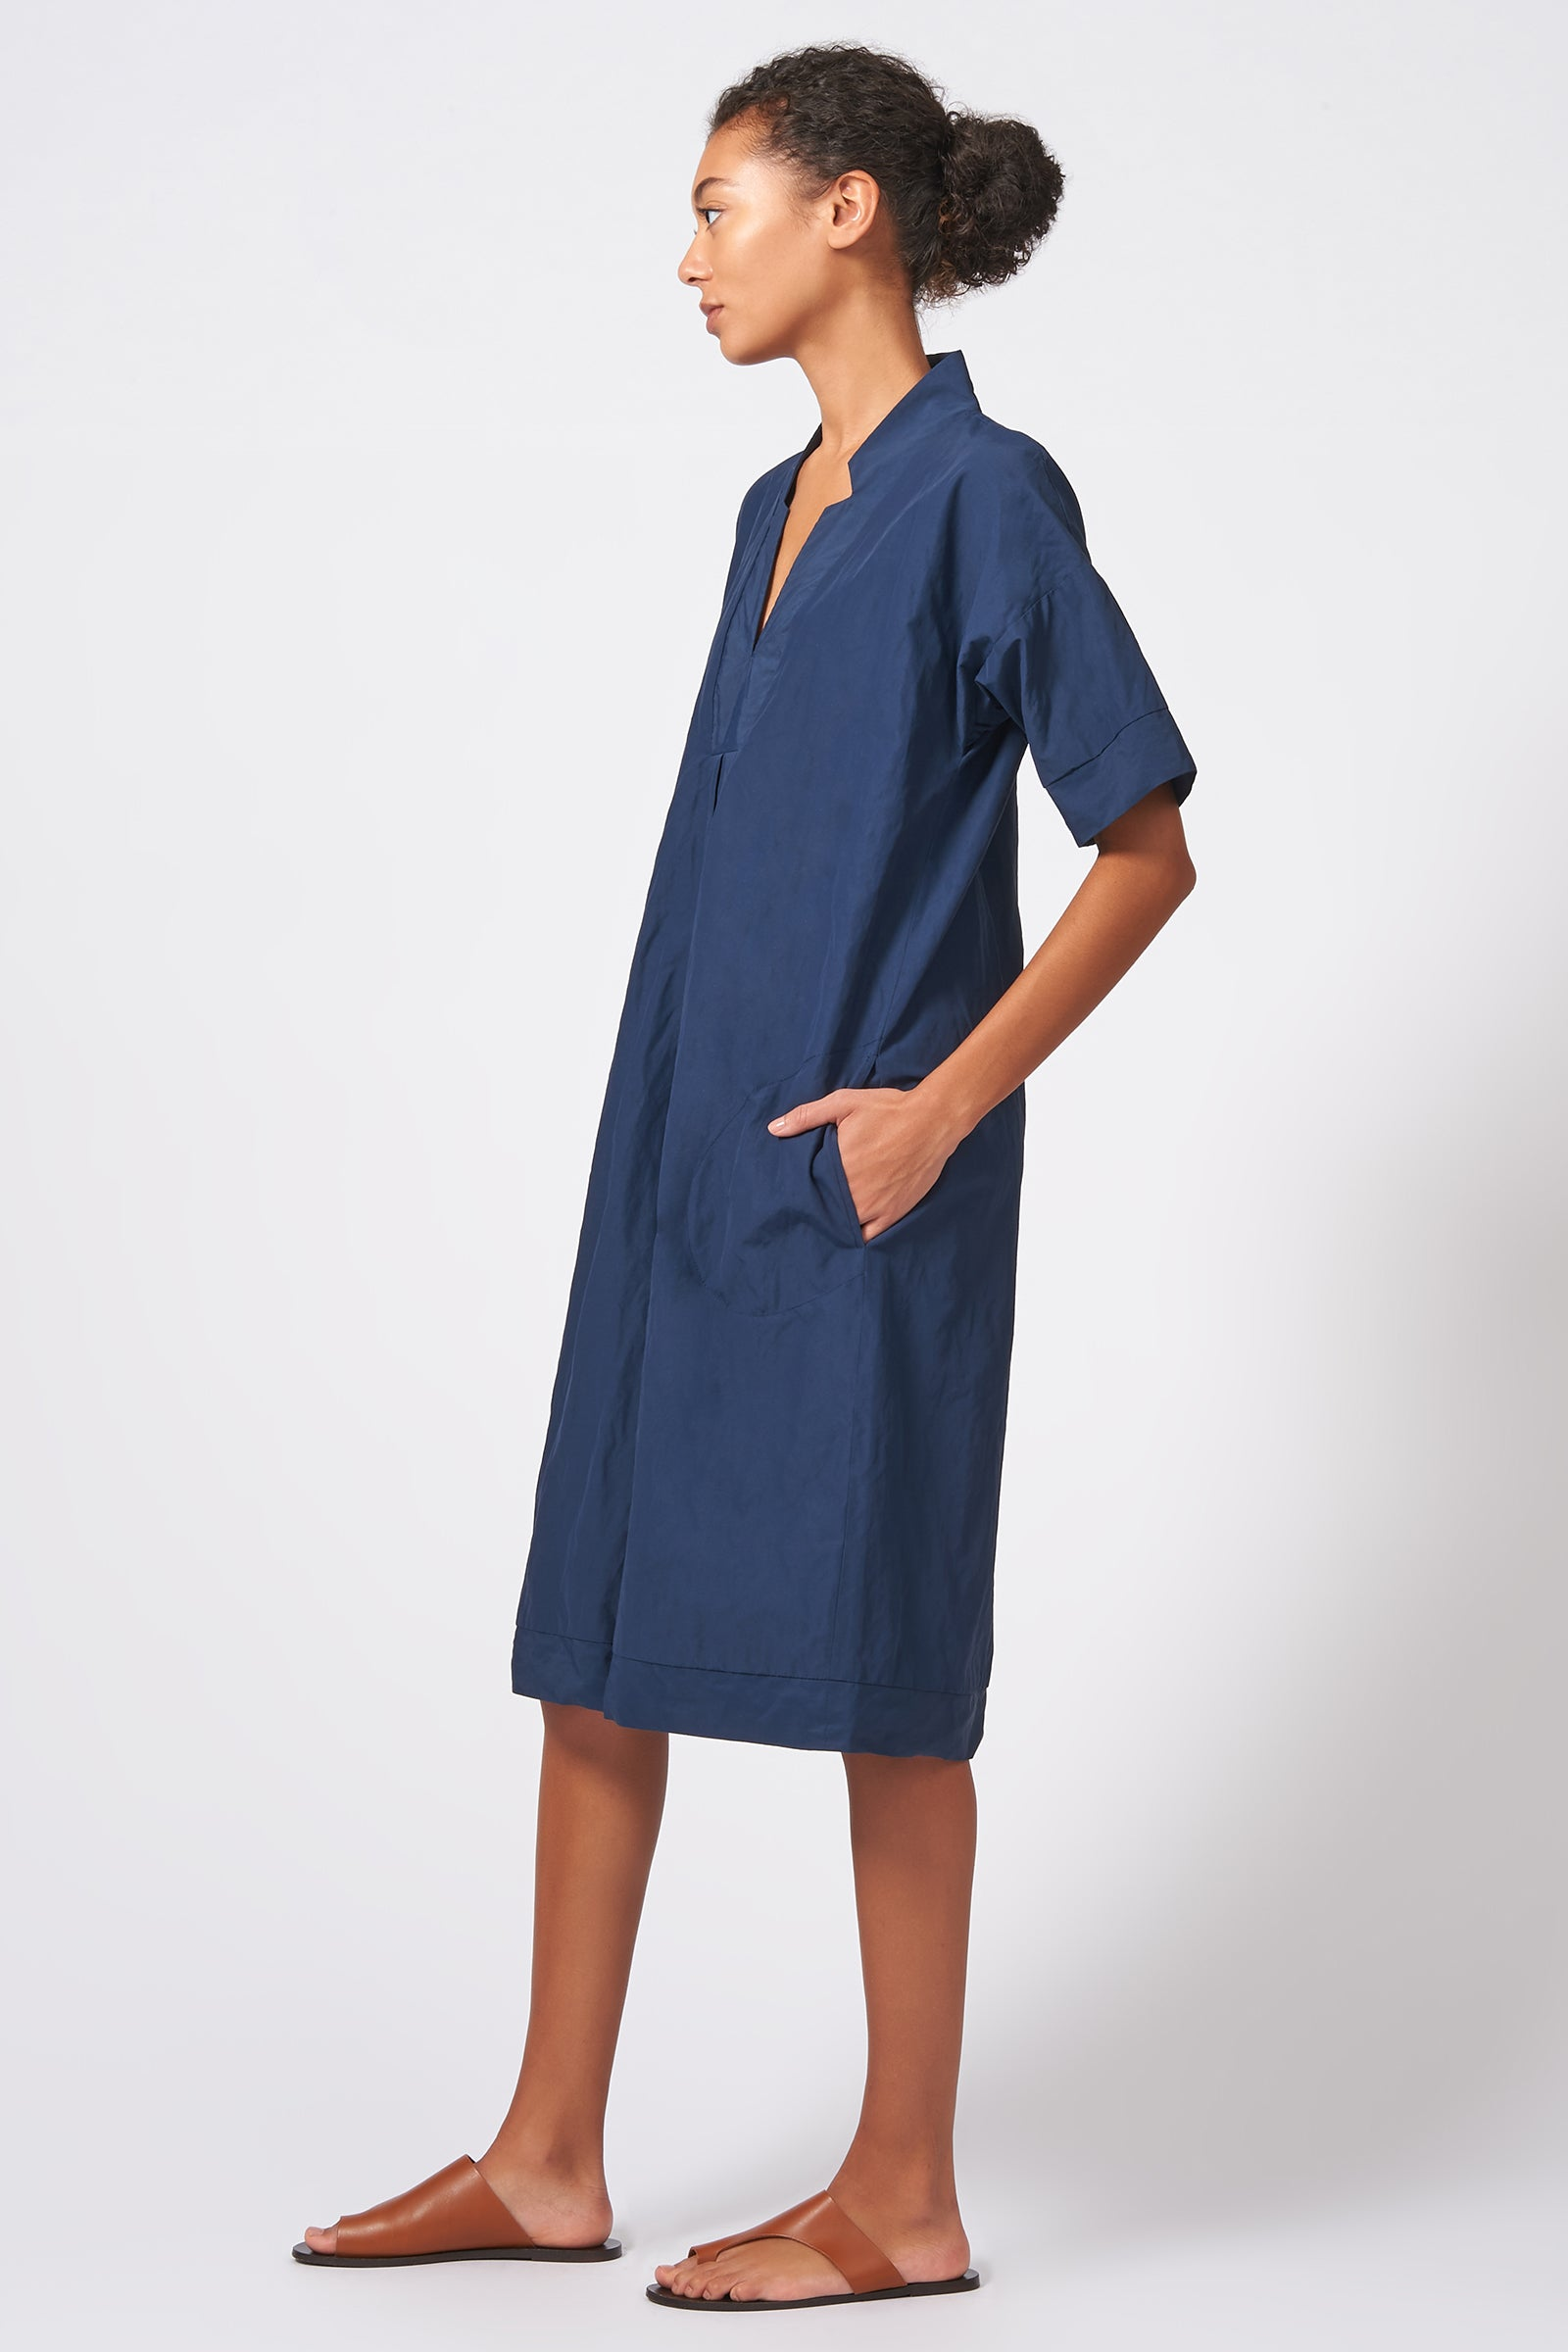 Kal Rieman Notch Placket Dress in Navy Cotton Nylon on Model Full Side View